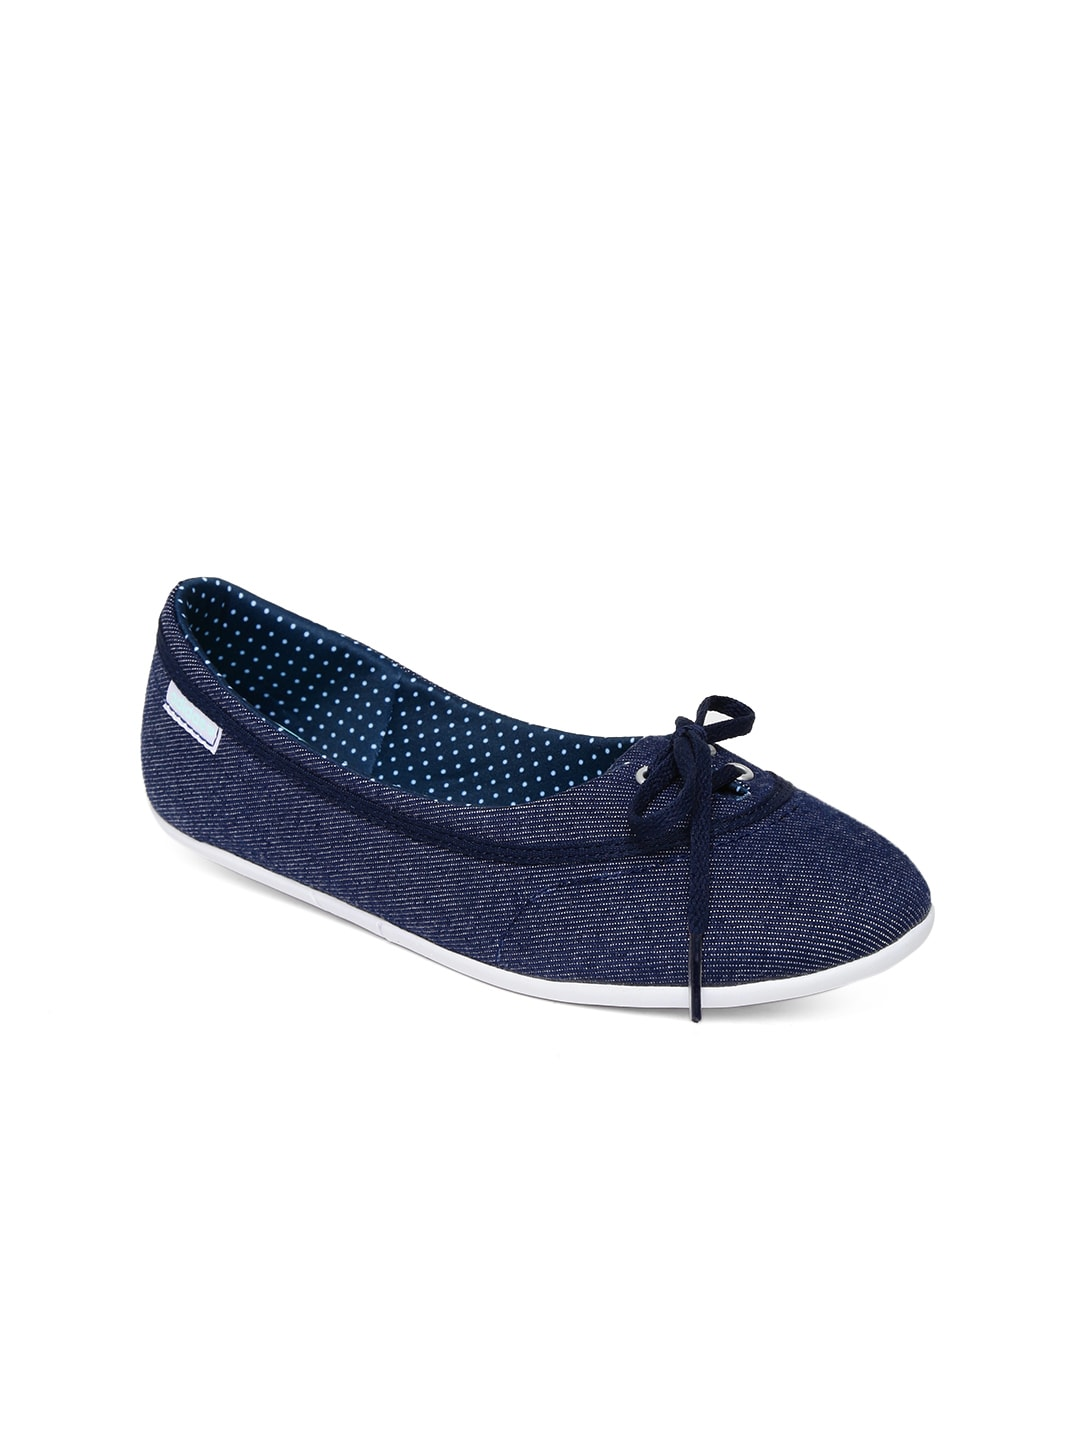 best service 889ee 894bf sale adidas neo women blue neolina flat shoes 20910 8dc1c